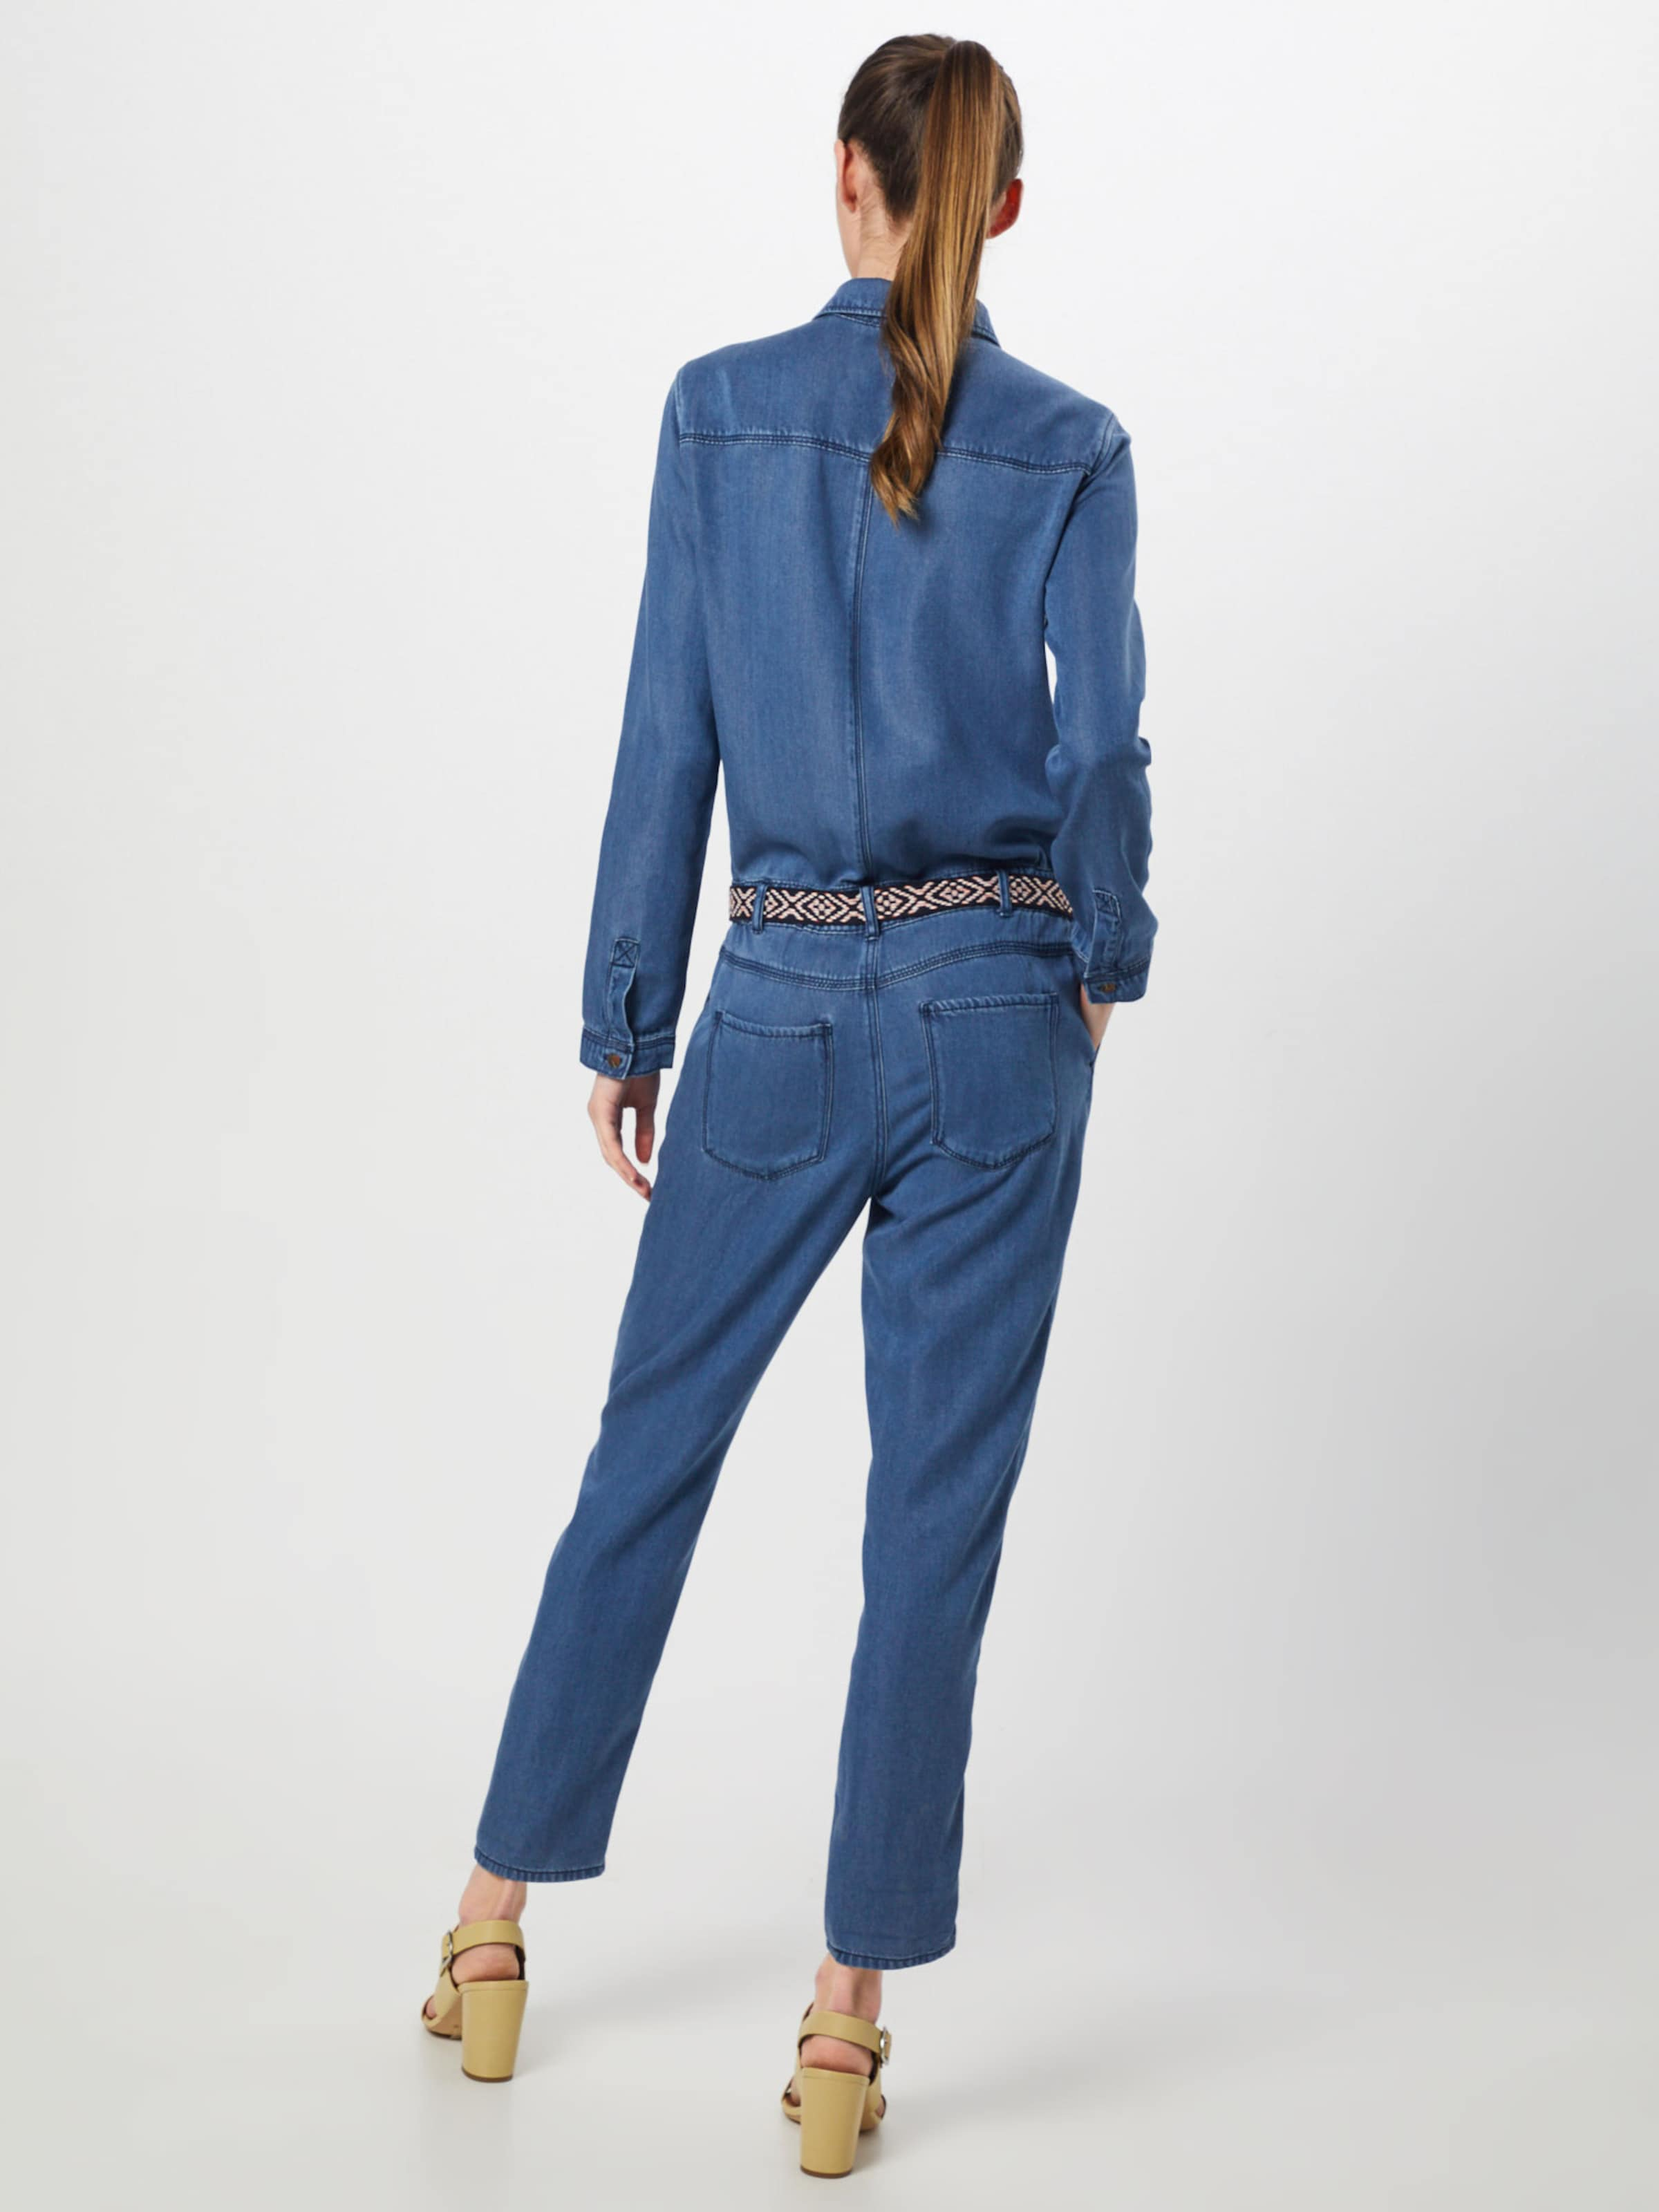 Blue Label Denim oliver Overall S In Red YH9DWIE2